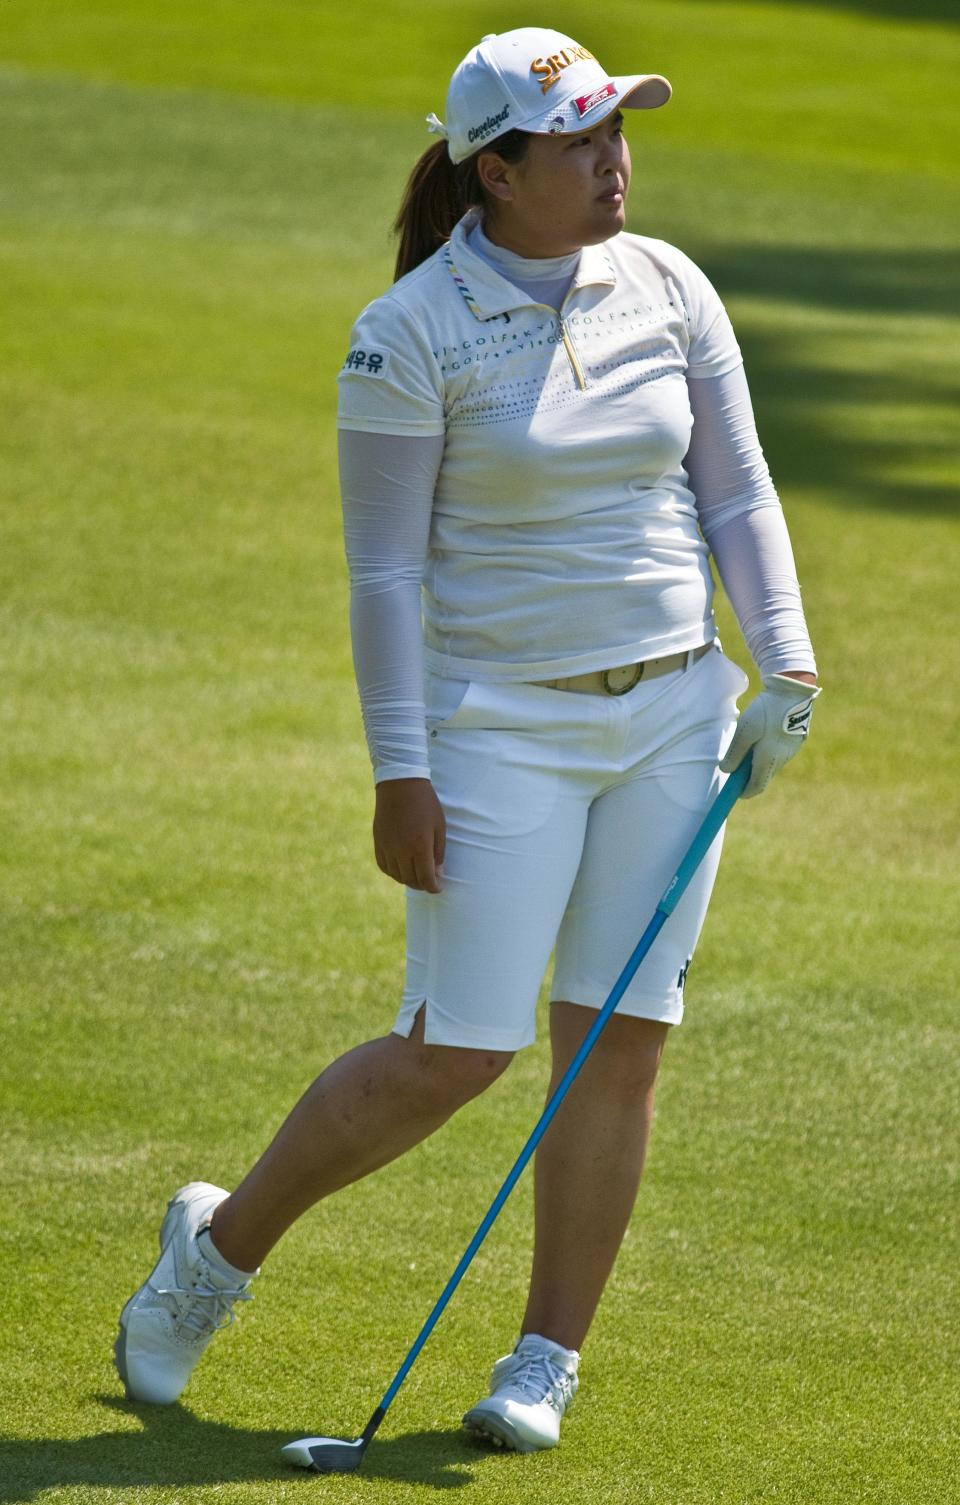 Inbee Park of South Korea, watches her shot from the second fairway during the second round of the LPGA NW Arkansas Championship golf tournament in Rogers, Ark., Saturday, June 30, 2012. (AP Photo/April L. Brown)